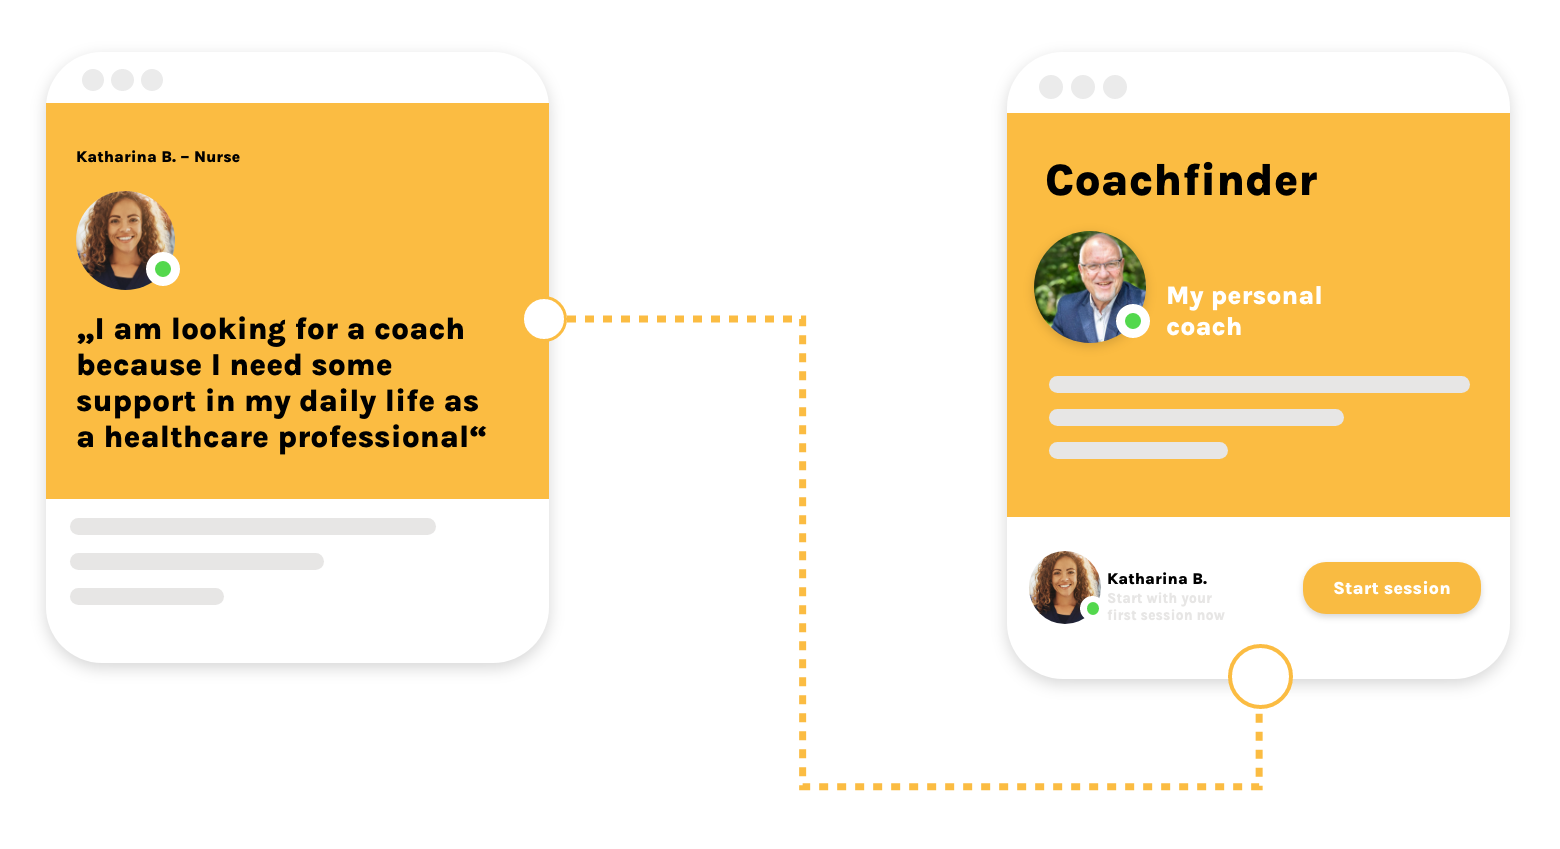 easy connection between coach and coachee